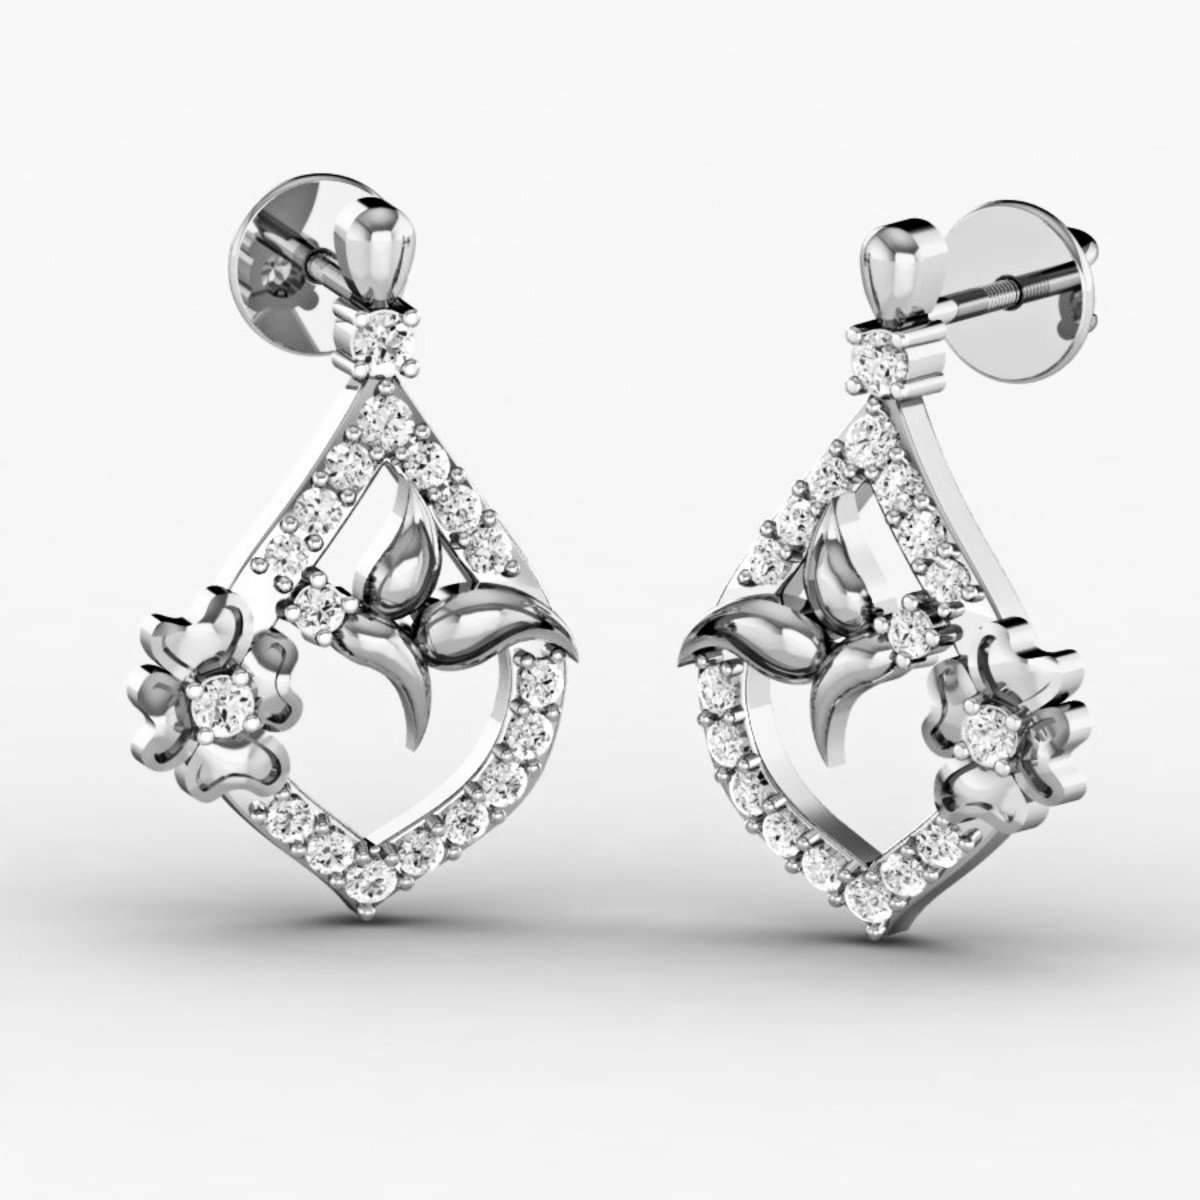 Diamoire Jewels Cachet 18kt White Gold Diamond Stud Earrings 5VcygN